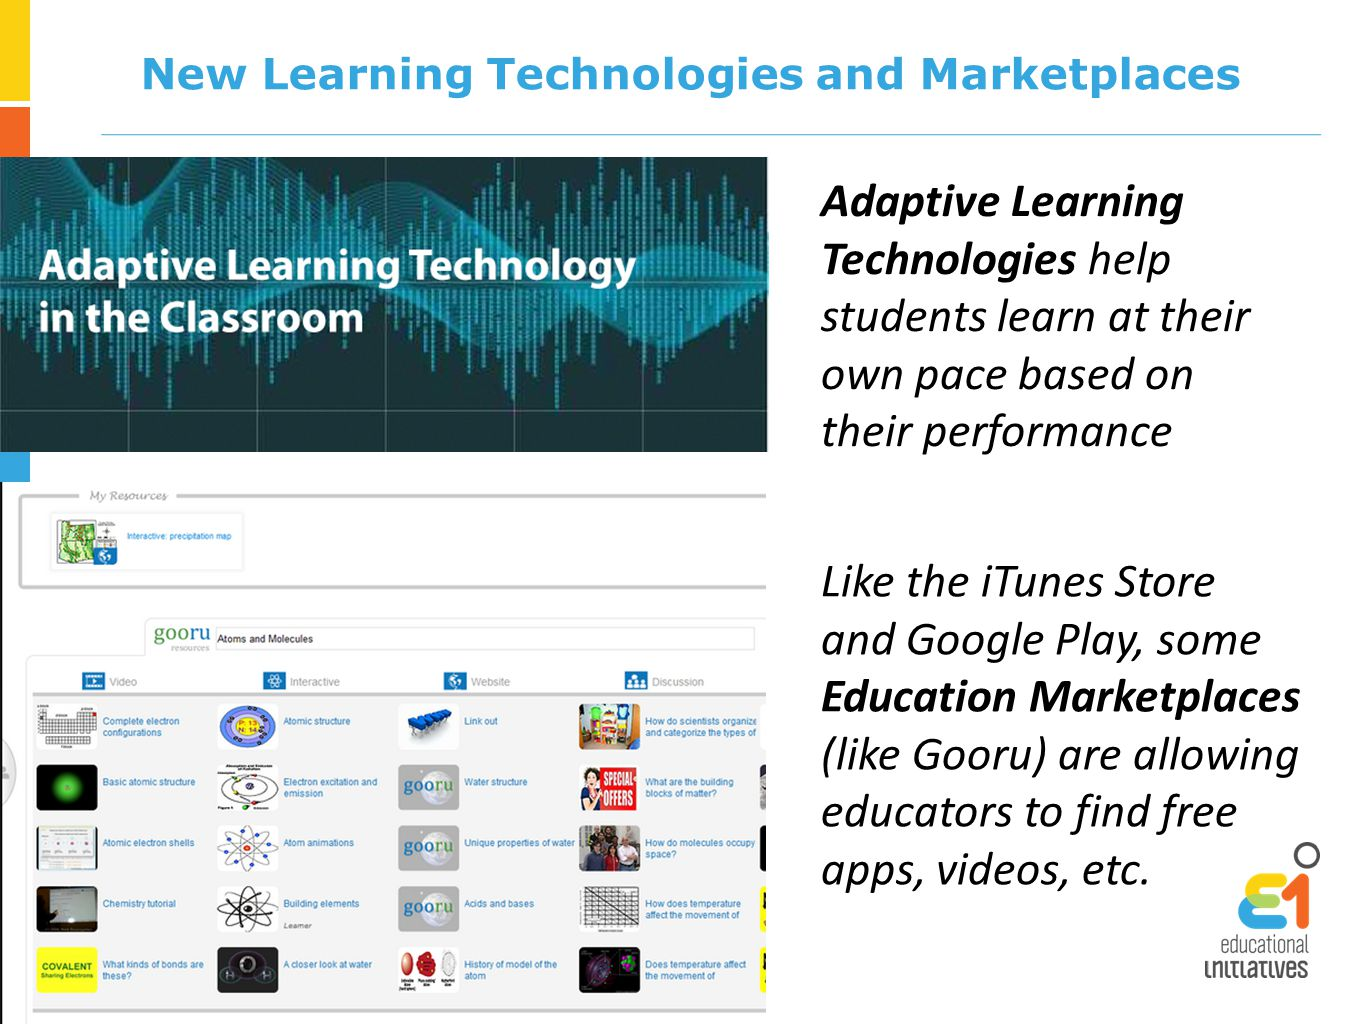 New Learning Technologies and Marketplaces Adaptive Learning Technologies help students learn at their own pace based on their performance Like the iTunes Store and Google Play, some Education Marketplaces (like Gooru) are allowing educators to find free apps, videos, etc.